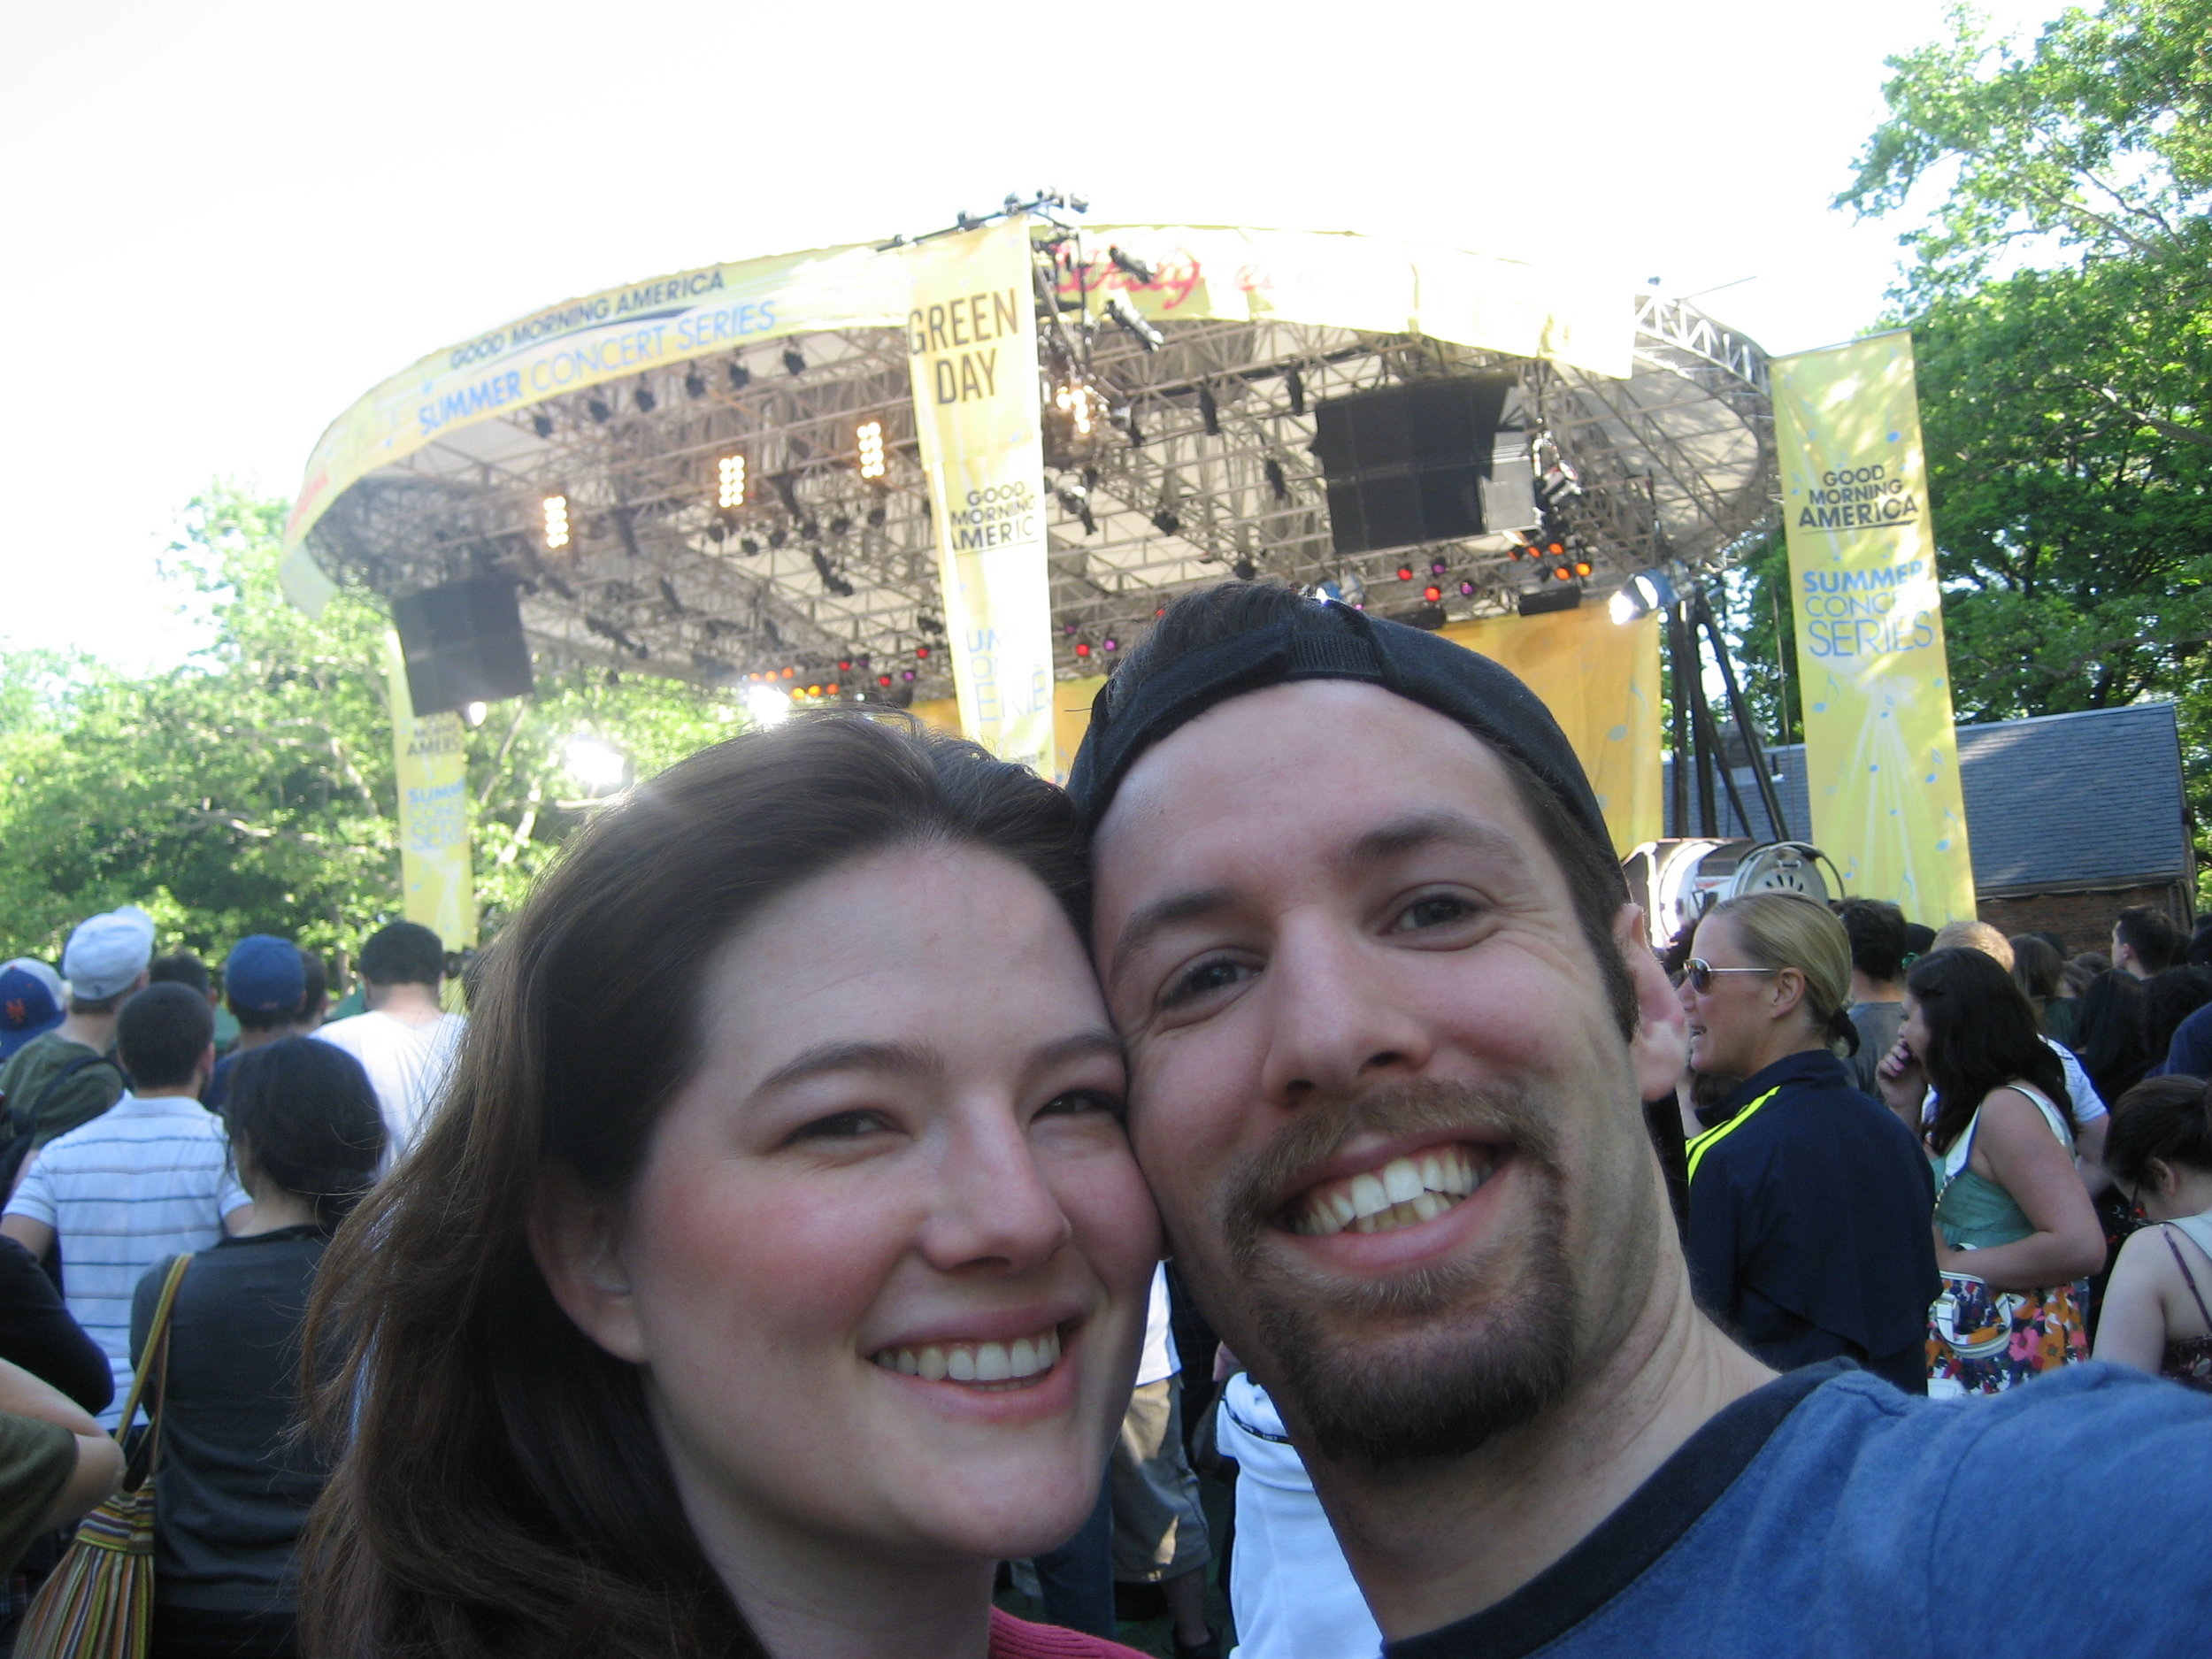 The author and her husband at a Green Day show in 2008.